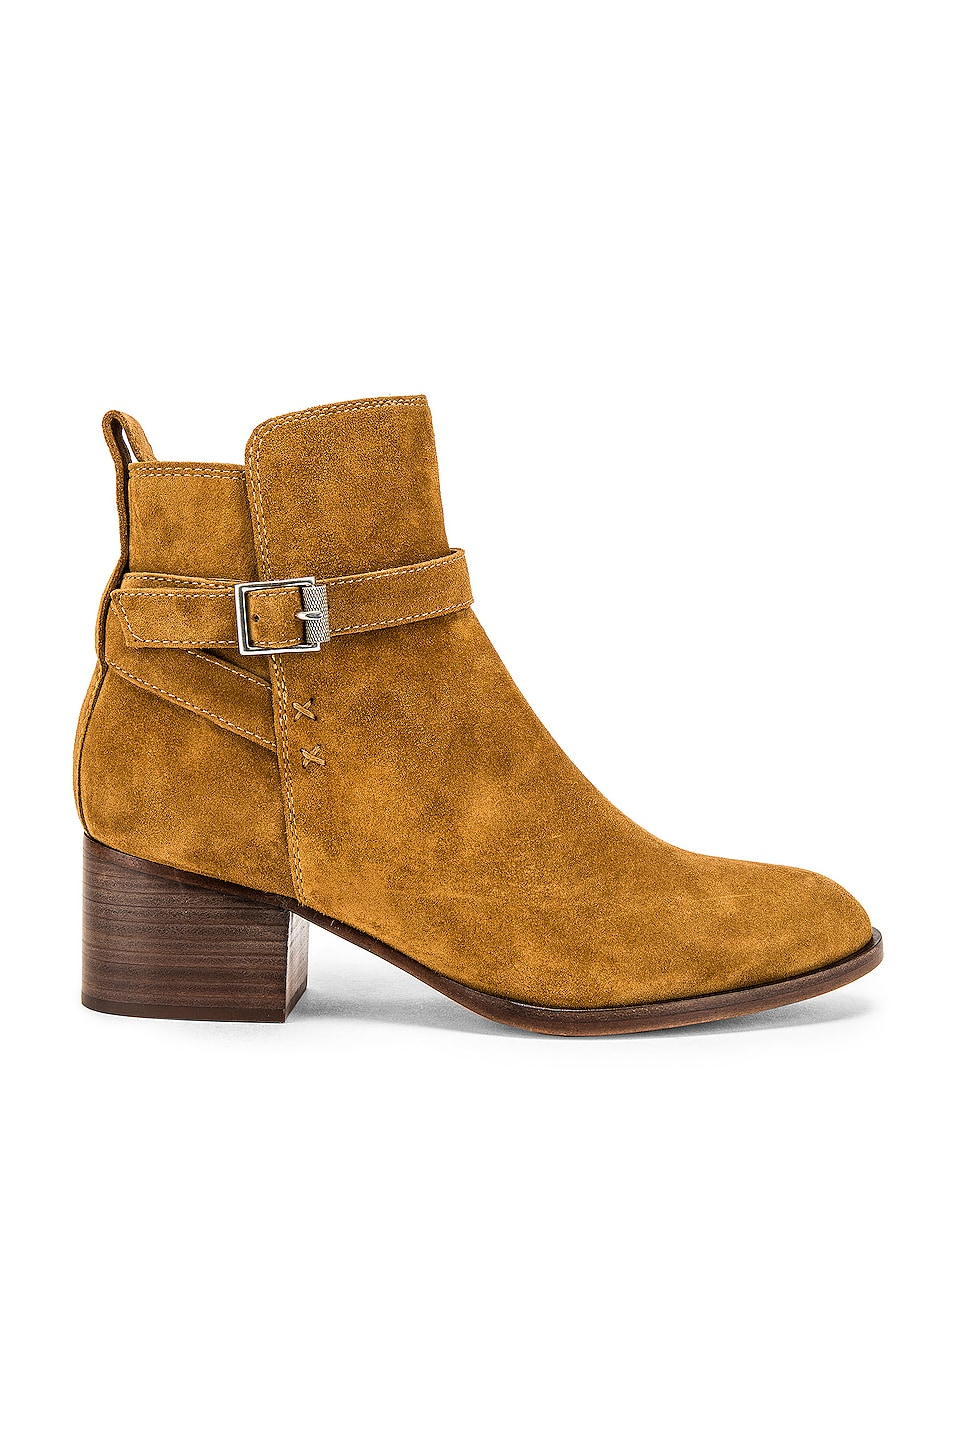 Rag & Bone Walker Buckle Bootie in Golden Brown